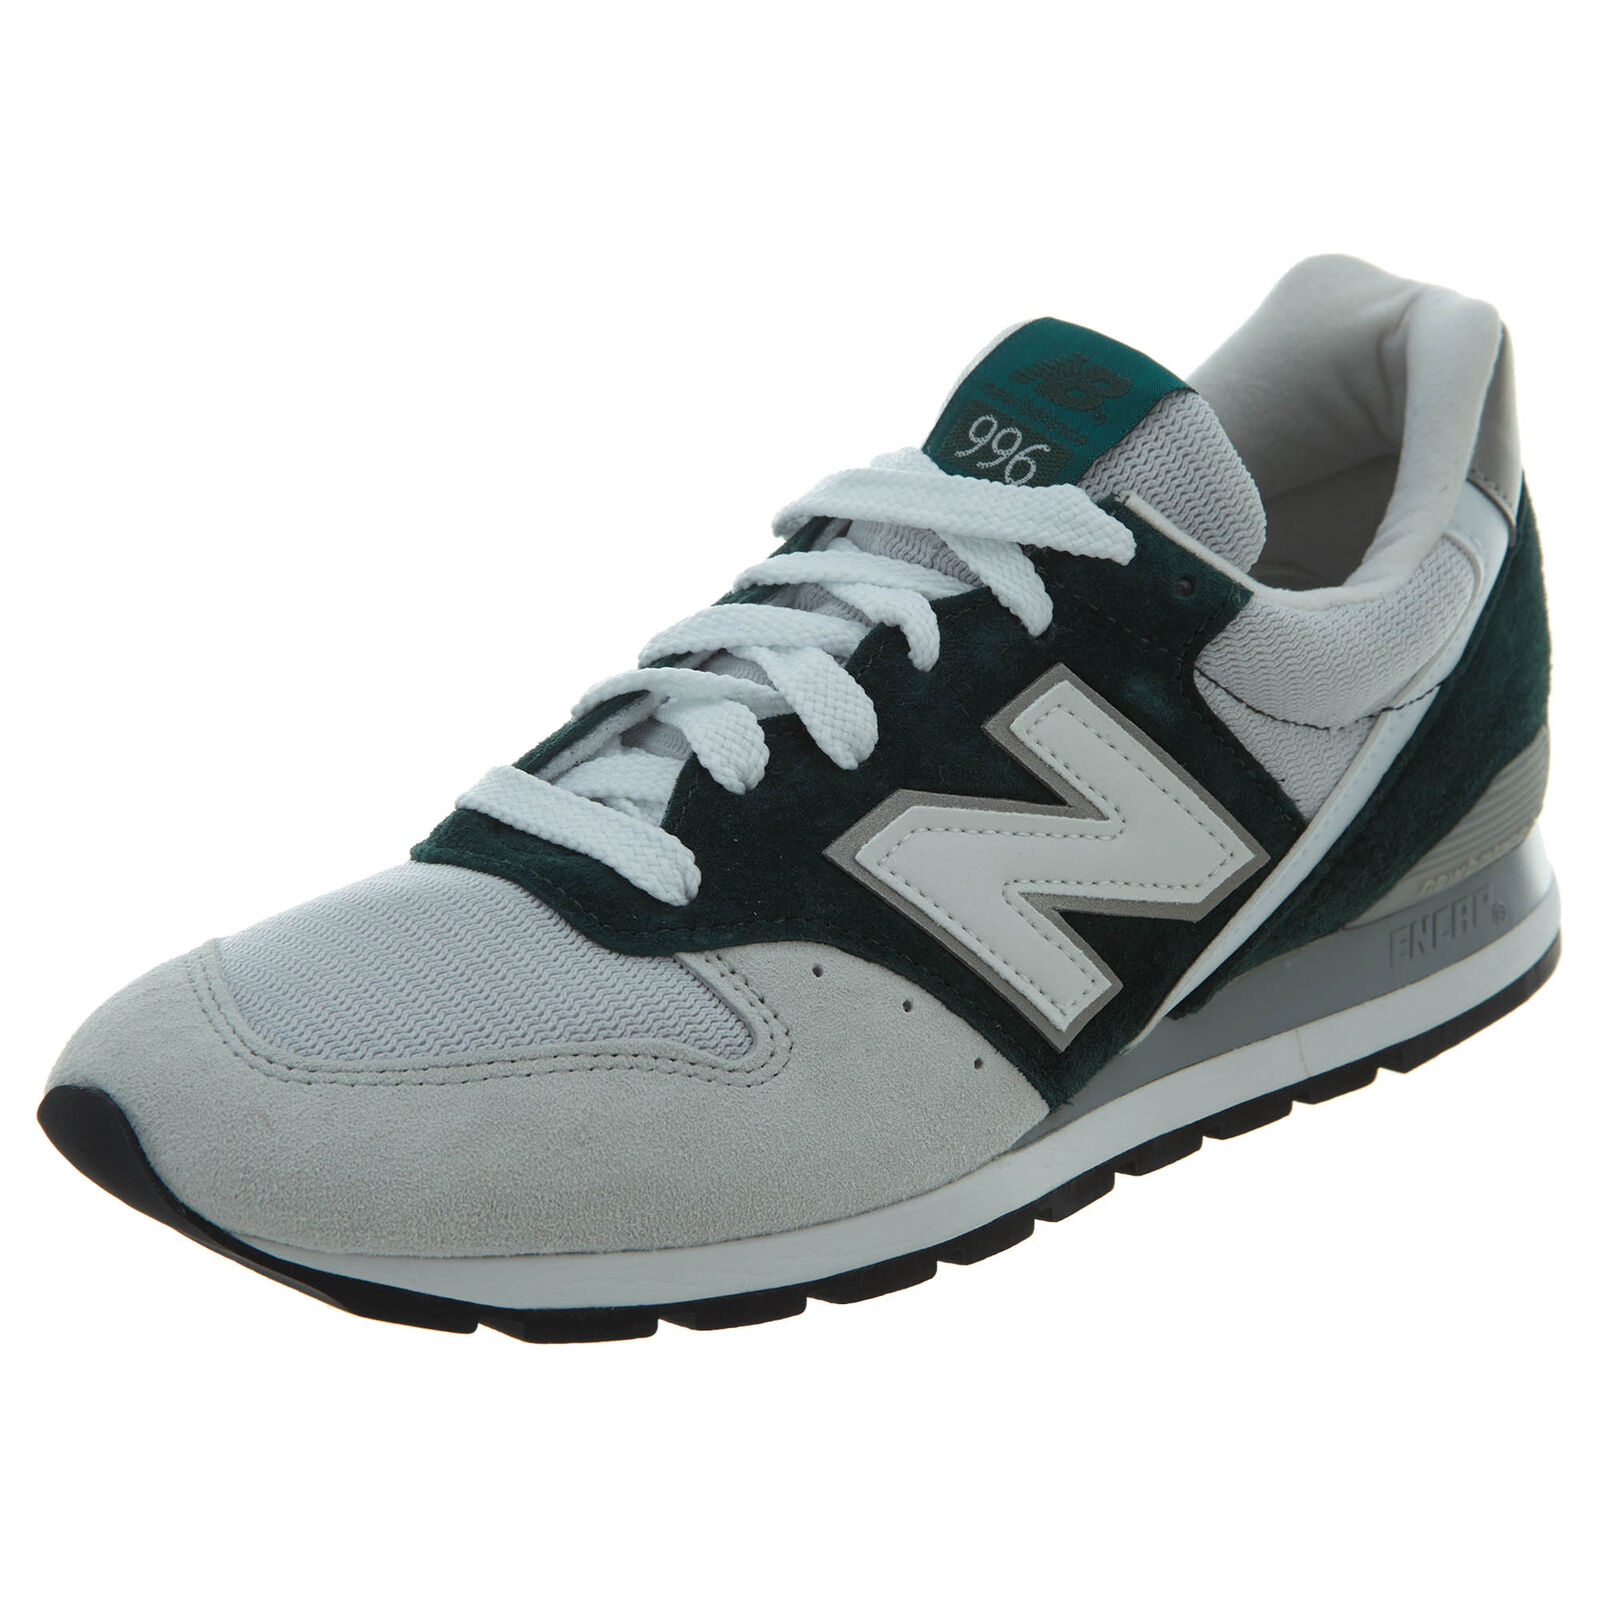 New Balance Mens 996 Classic Running shoes Green Grey M996-CEPA